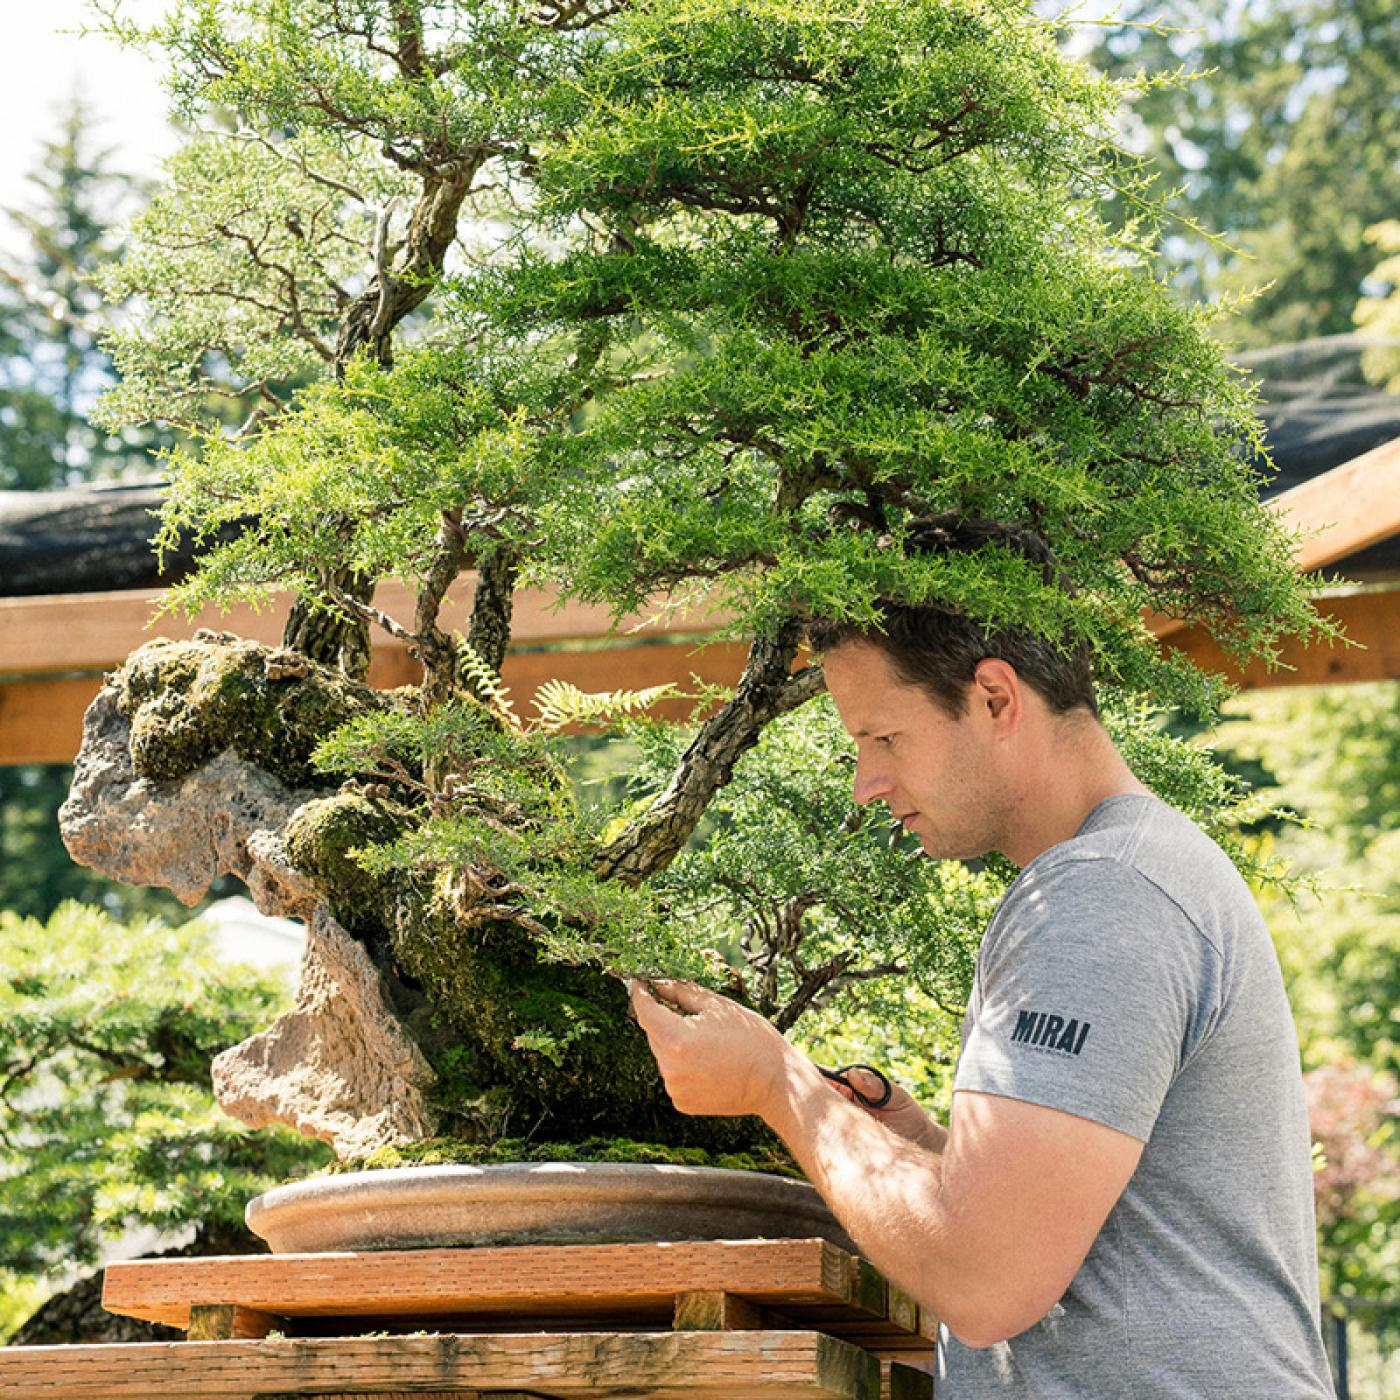 ryan_neil_pruning_cypress_bonsai